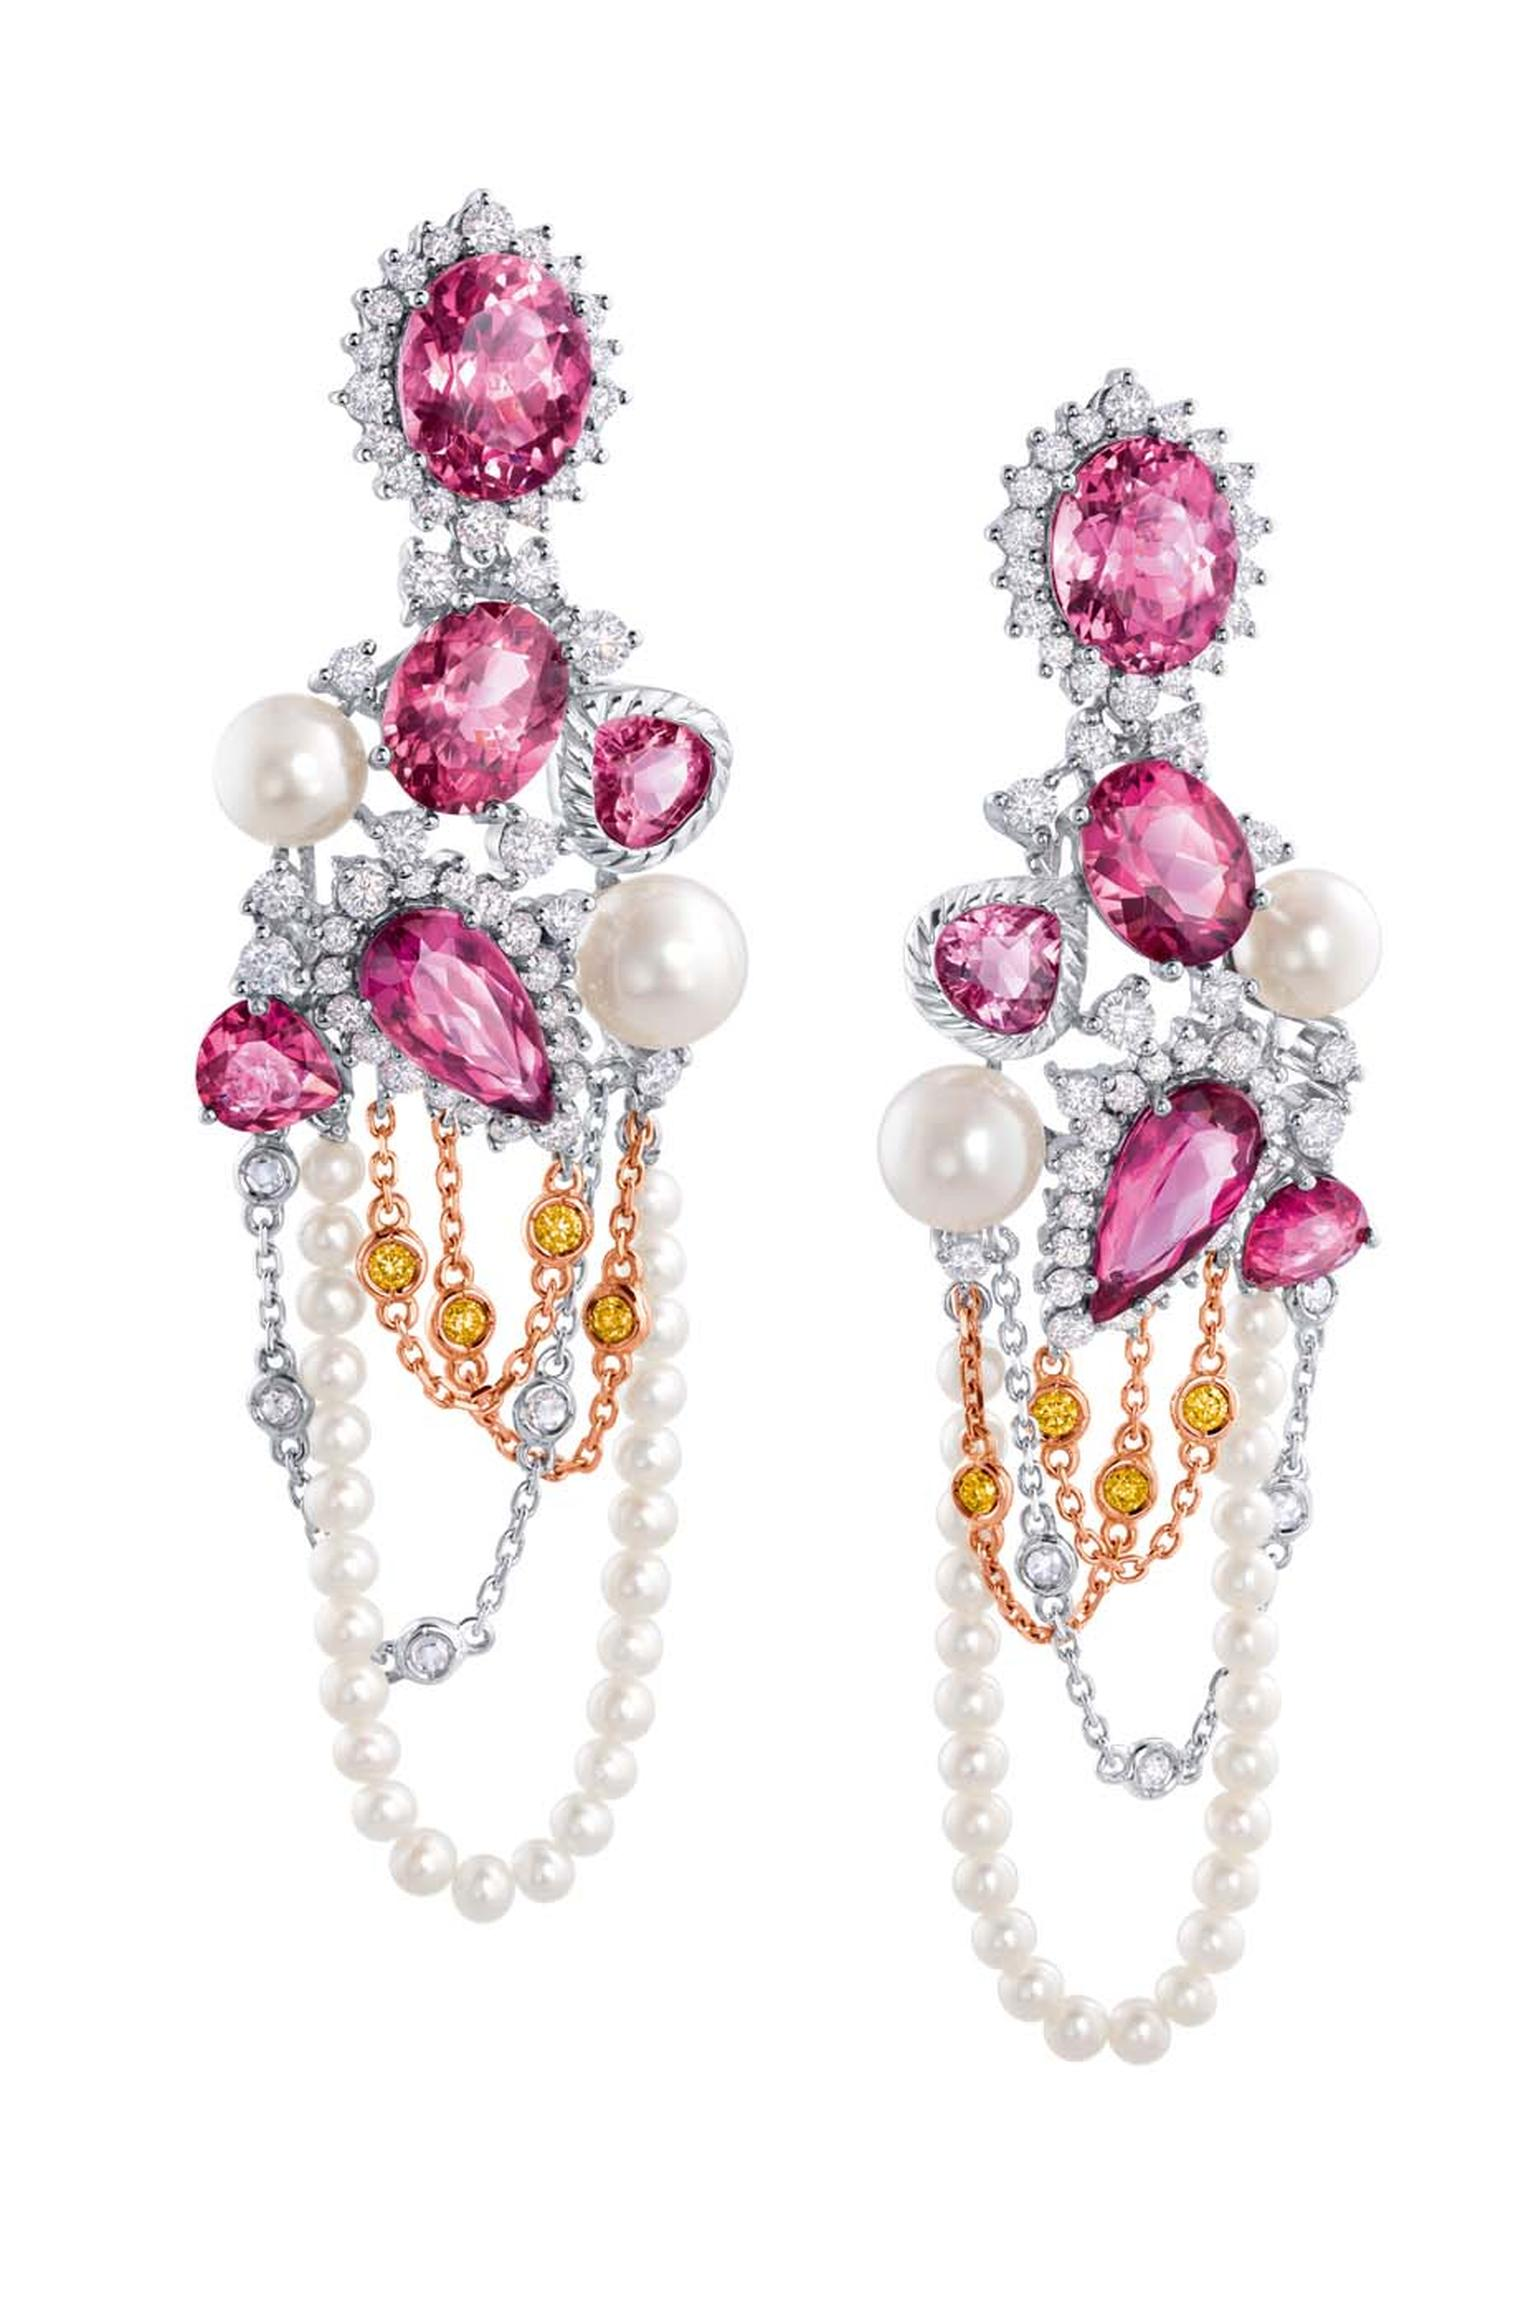 Chow Tai Fook Reflections of Siem Zephyr earrings with pink diamonds, pearls and purple and red tourmalines.